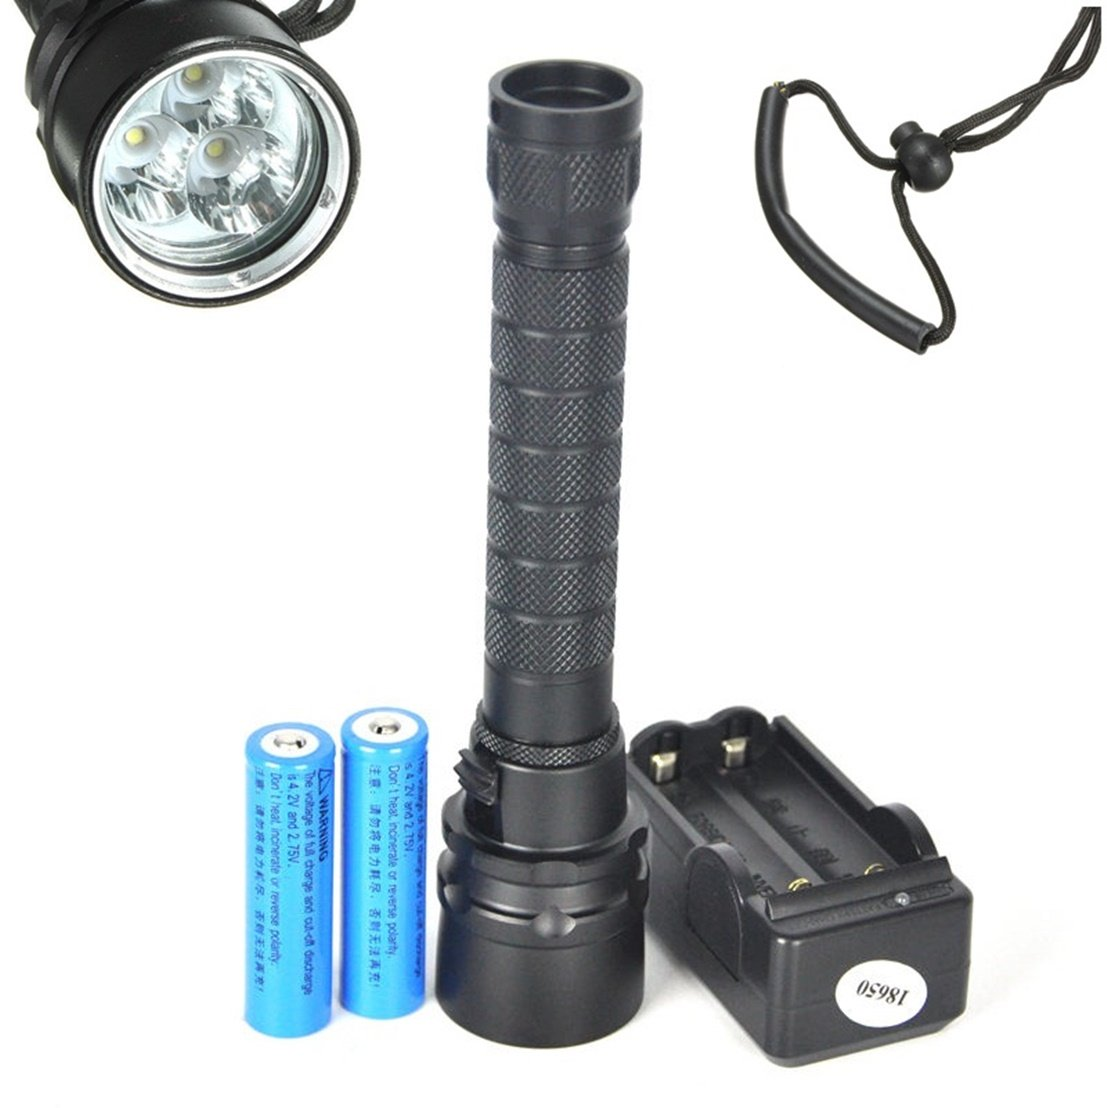 1Pc Matchless Popular 3x LED 100m Diving Flashlight 6000Lm Skid Proof Scuba Lamp Underwater Color Black with Battery Charger by GVGs Shop